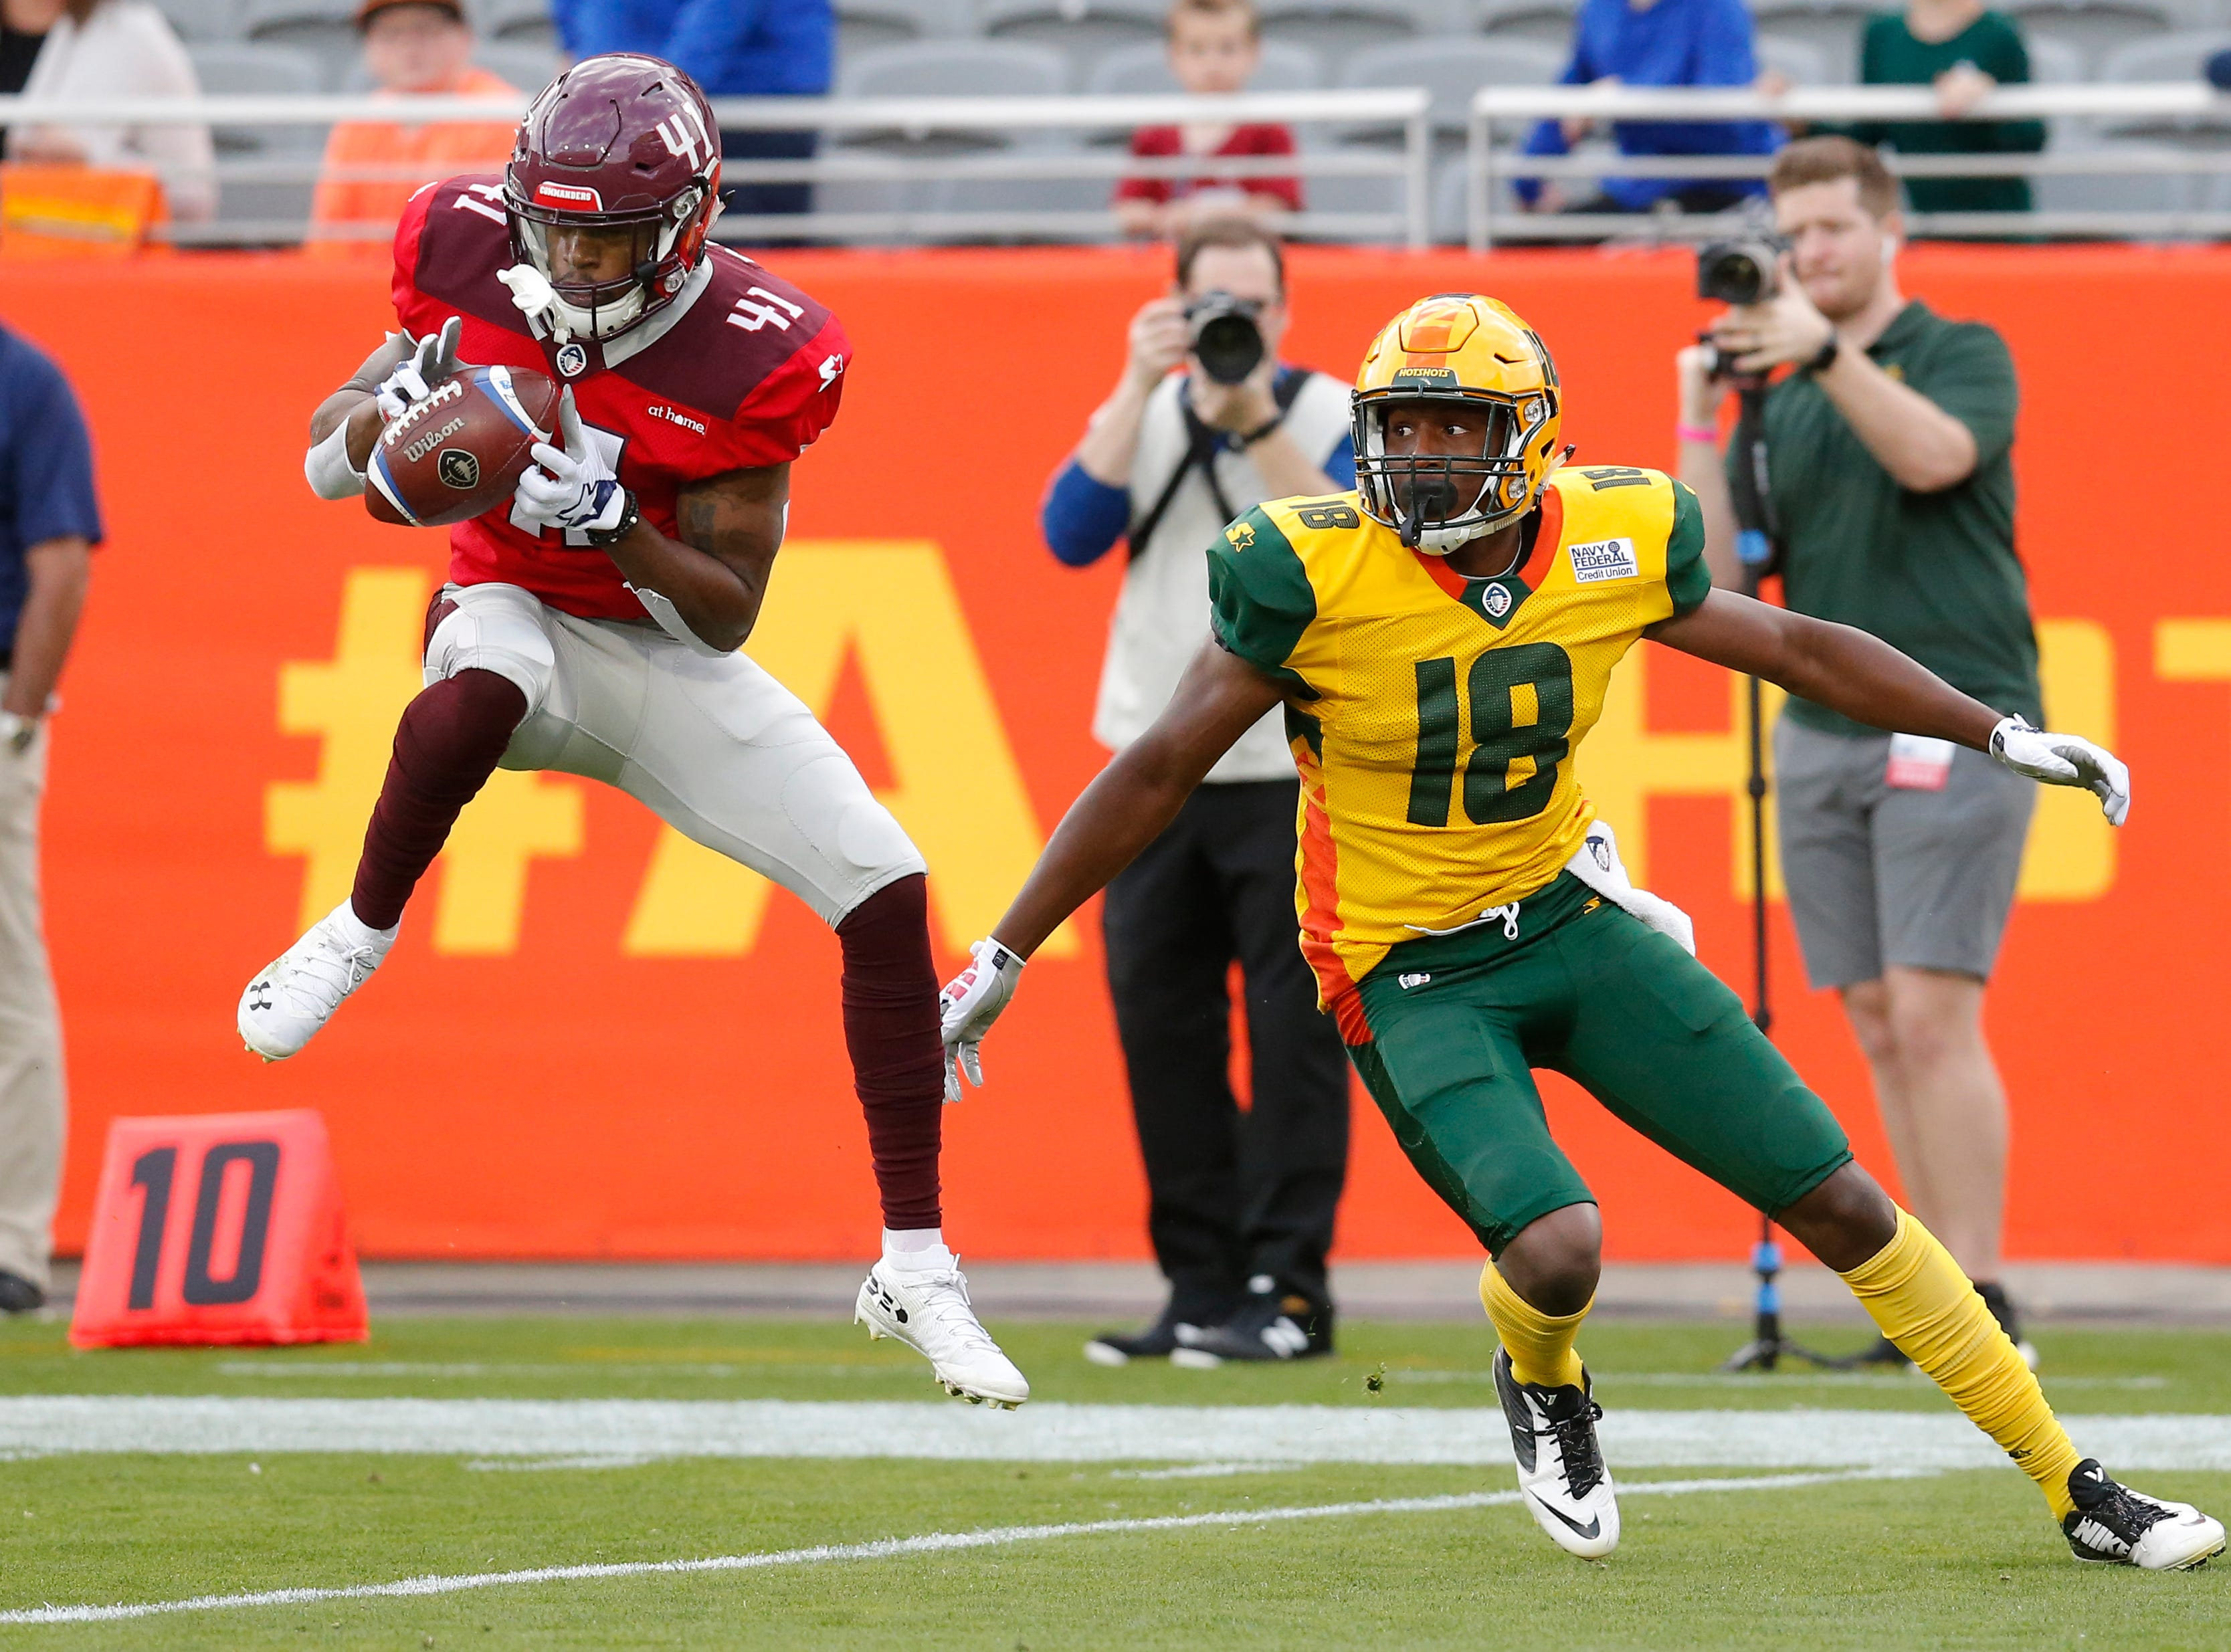 San Antonio Commanders defensive back De'Vante Bausby (41) intercepts the ball that was intended for Arizona Hotshots wide receiver Marquis Bundy (18) in the first half during an AAF football game, Sunday, March 10, 2019, at Sun Devil Stadium in Phoenix. (AP Photo/Rick Scuteri)